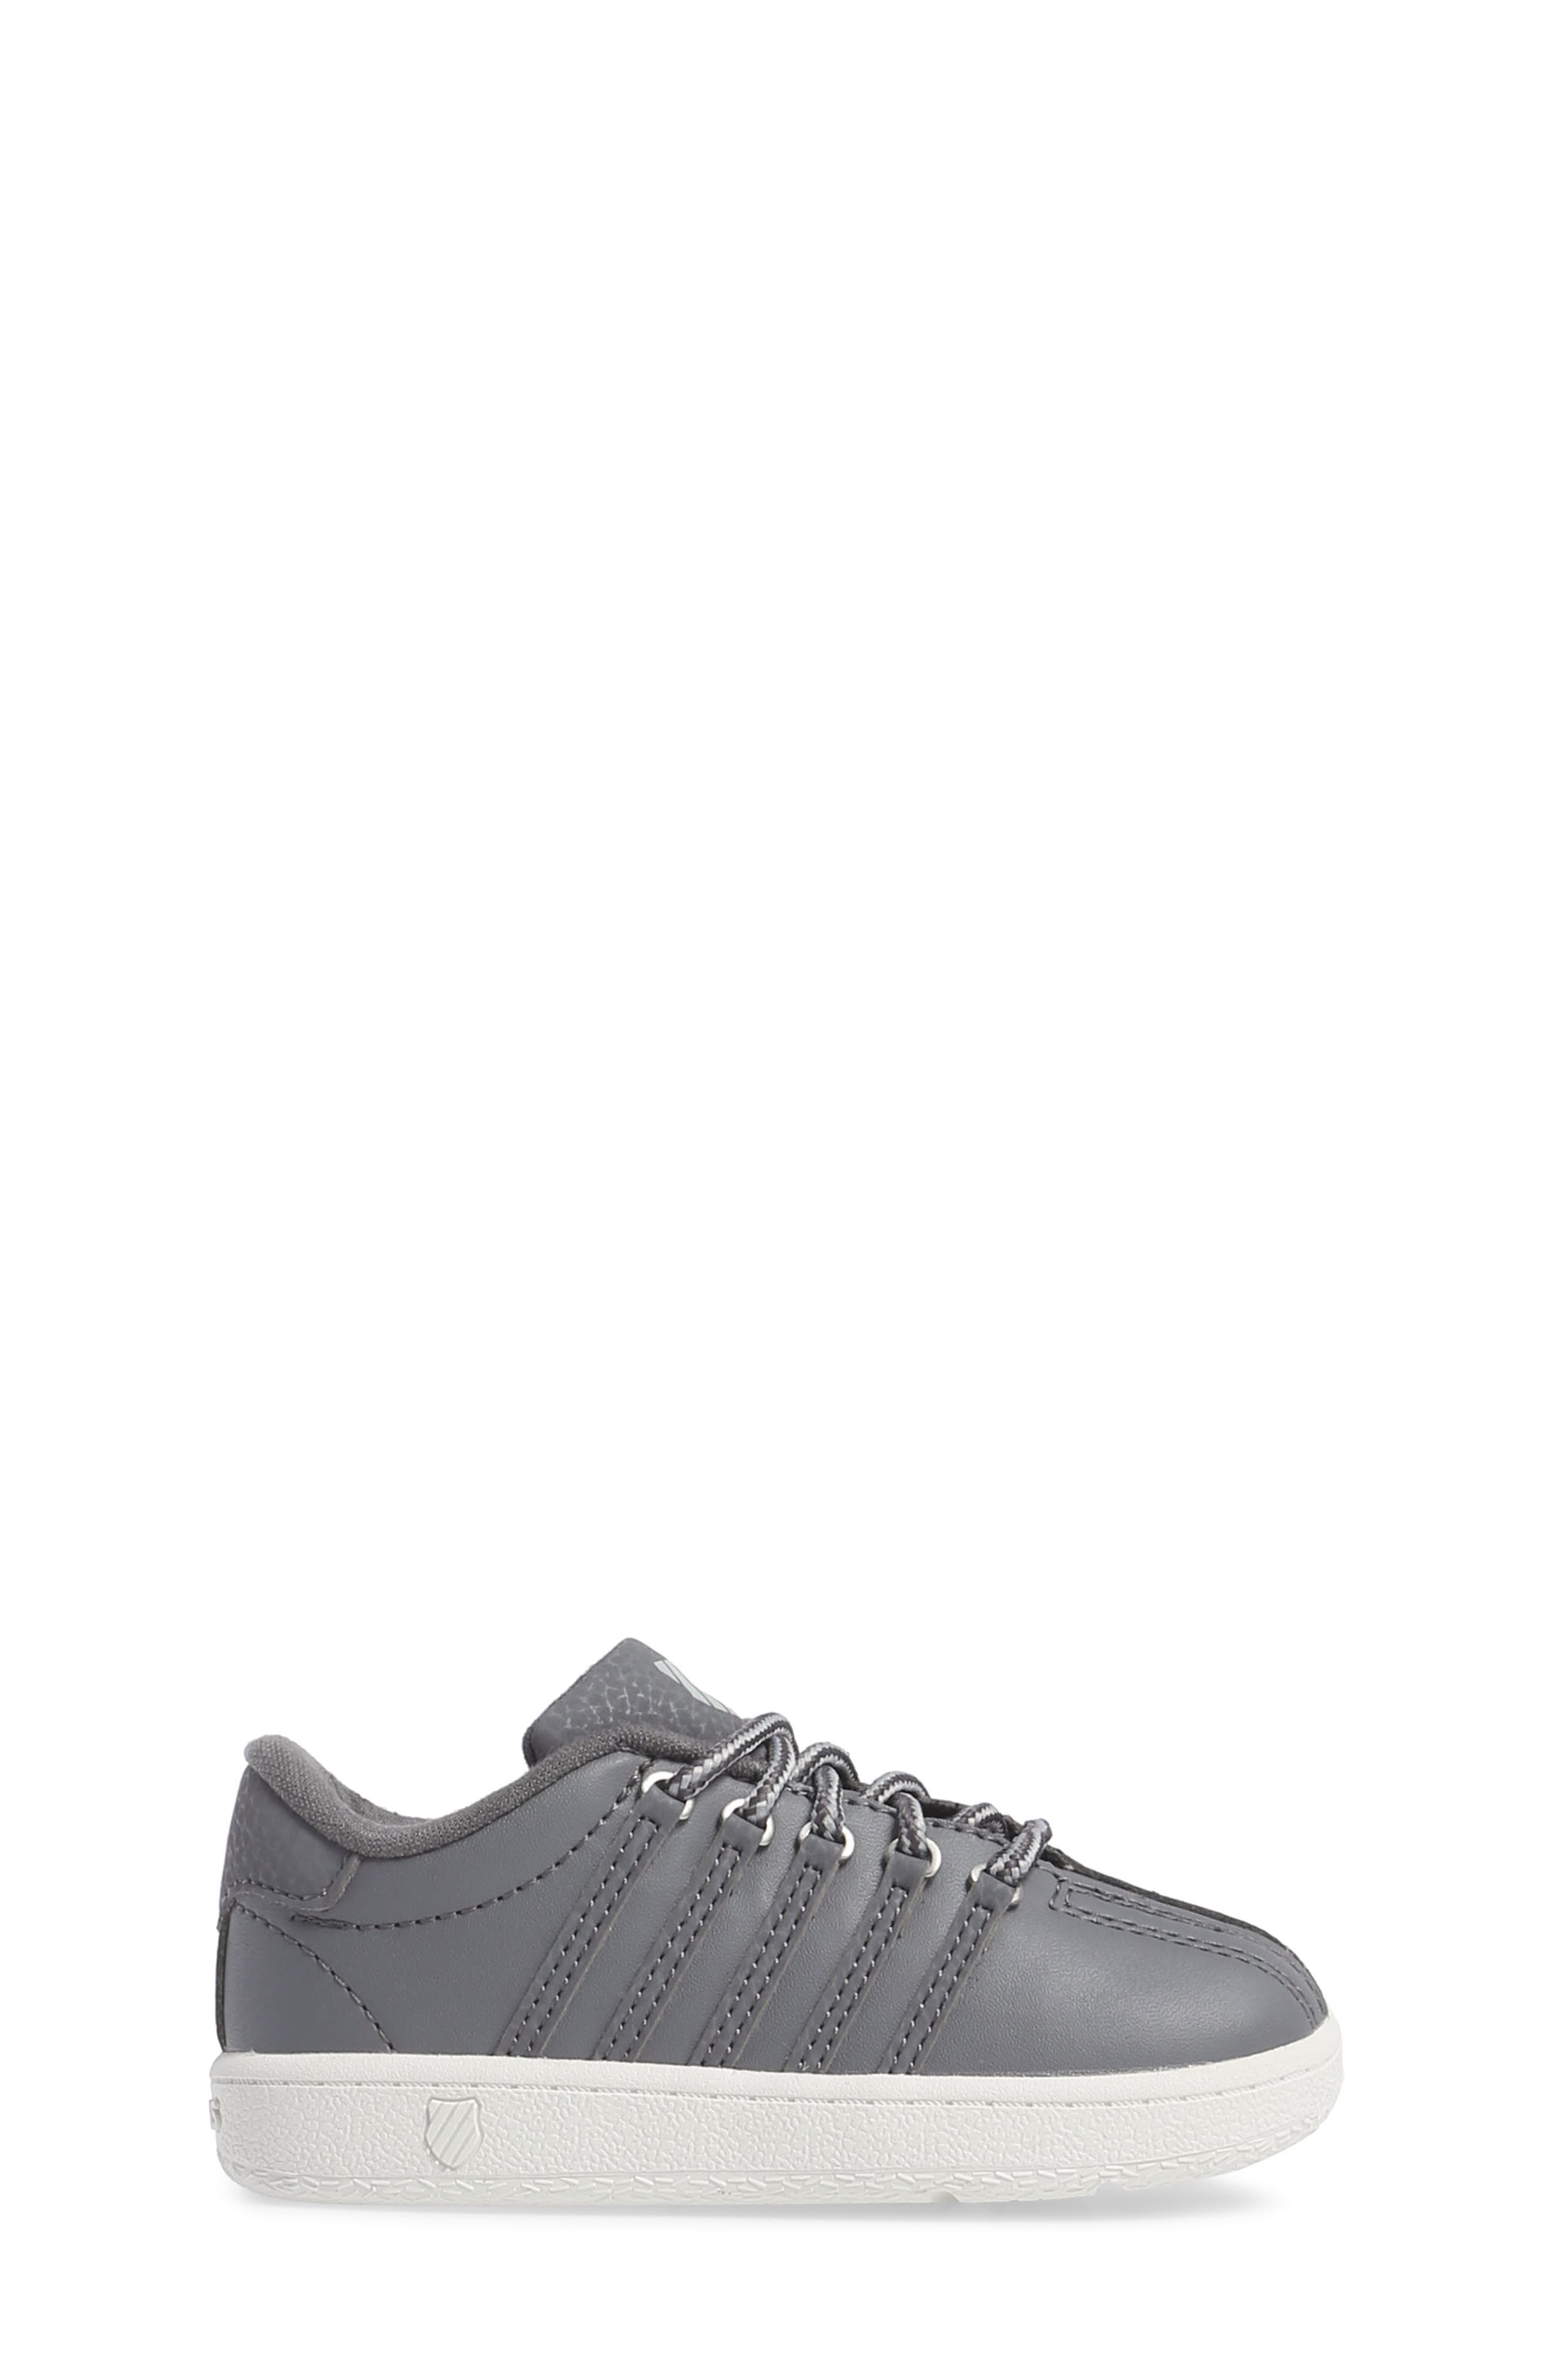 Classic VN Sneaker,                             Alternate thumbnail 3, color,                             Charcoal/ Storm/ Lily White